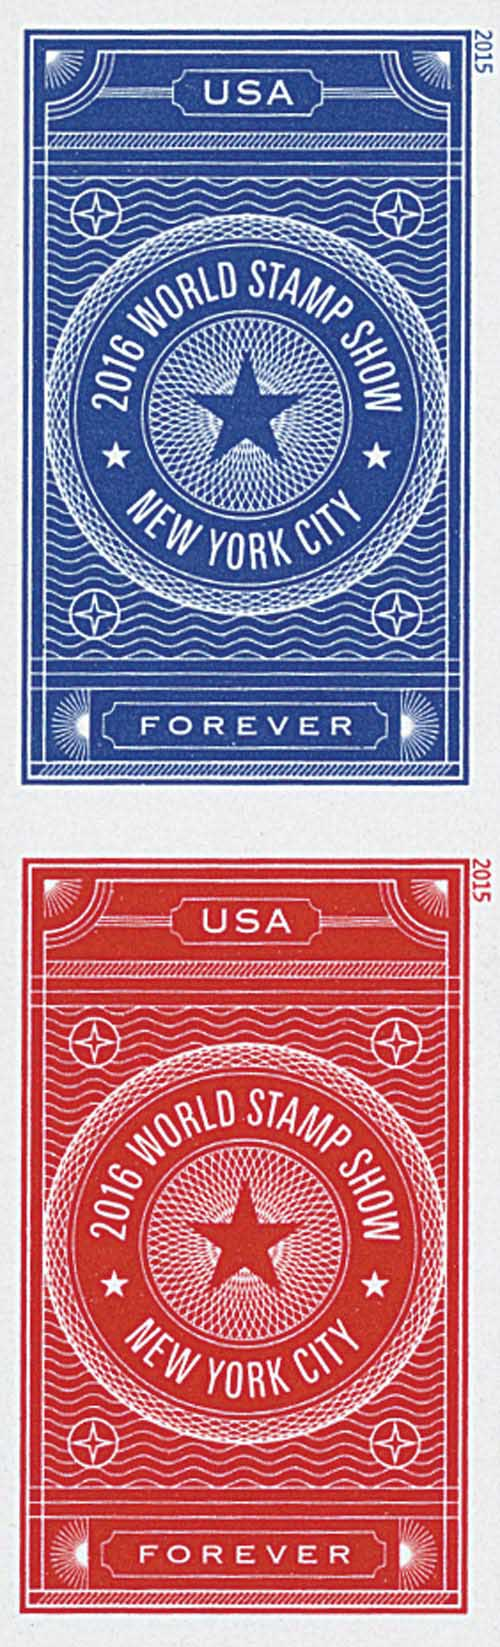 2015 First-Class Forever Stamp - Imperforate 2016 World Stamp Show, New York City